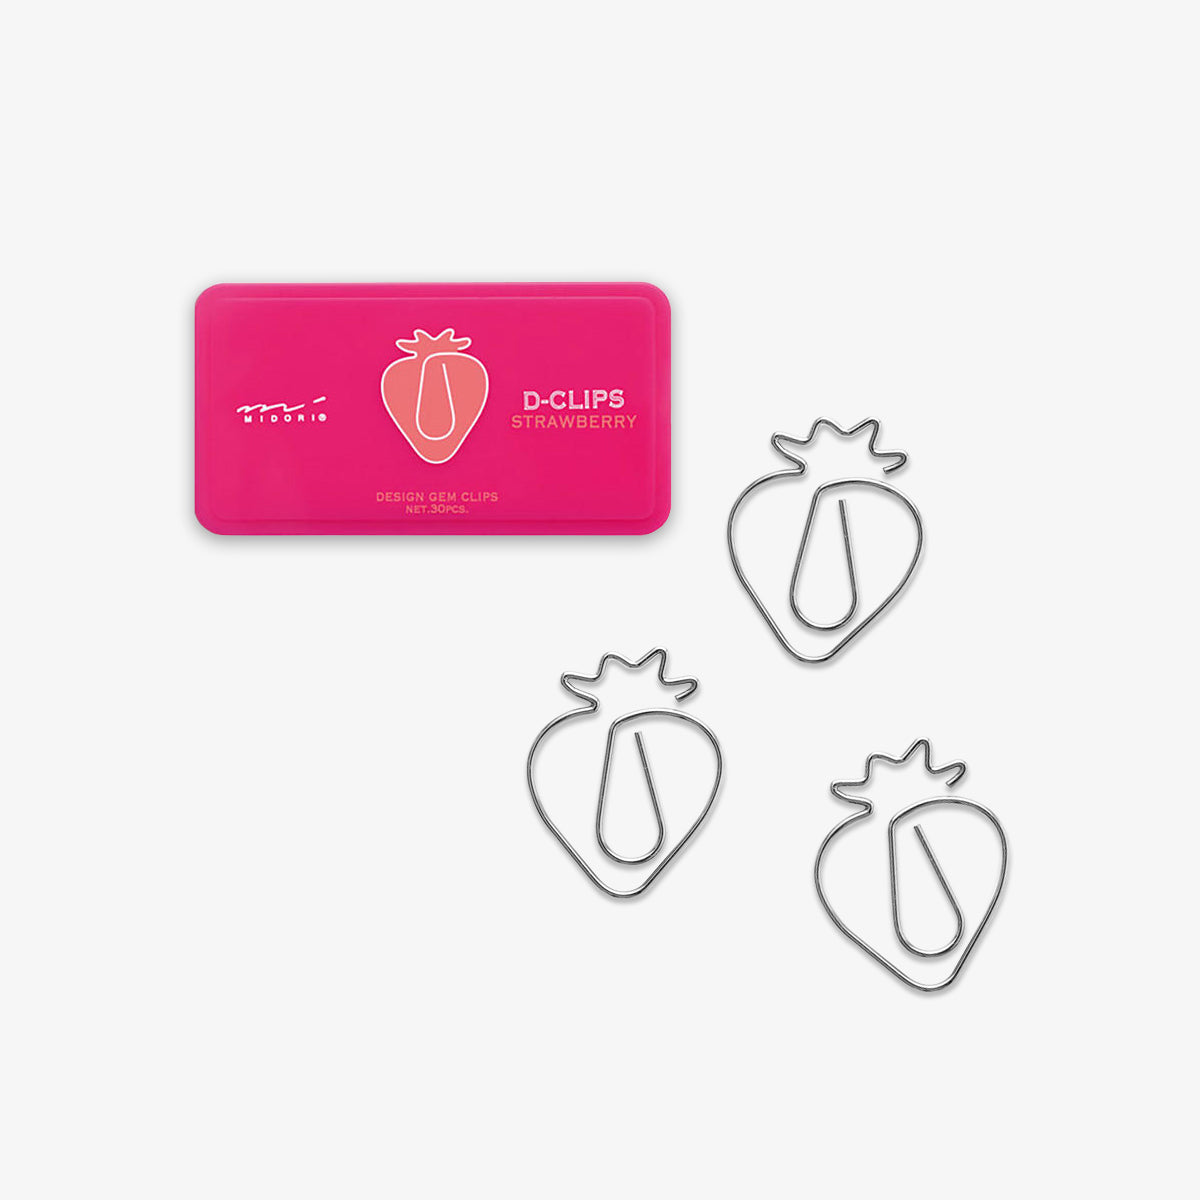 D-CLIPS MINI // STRAWBERRY